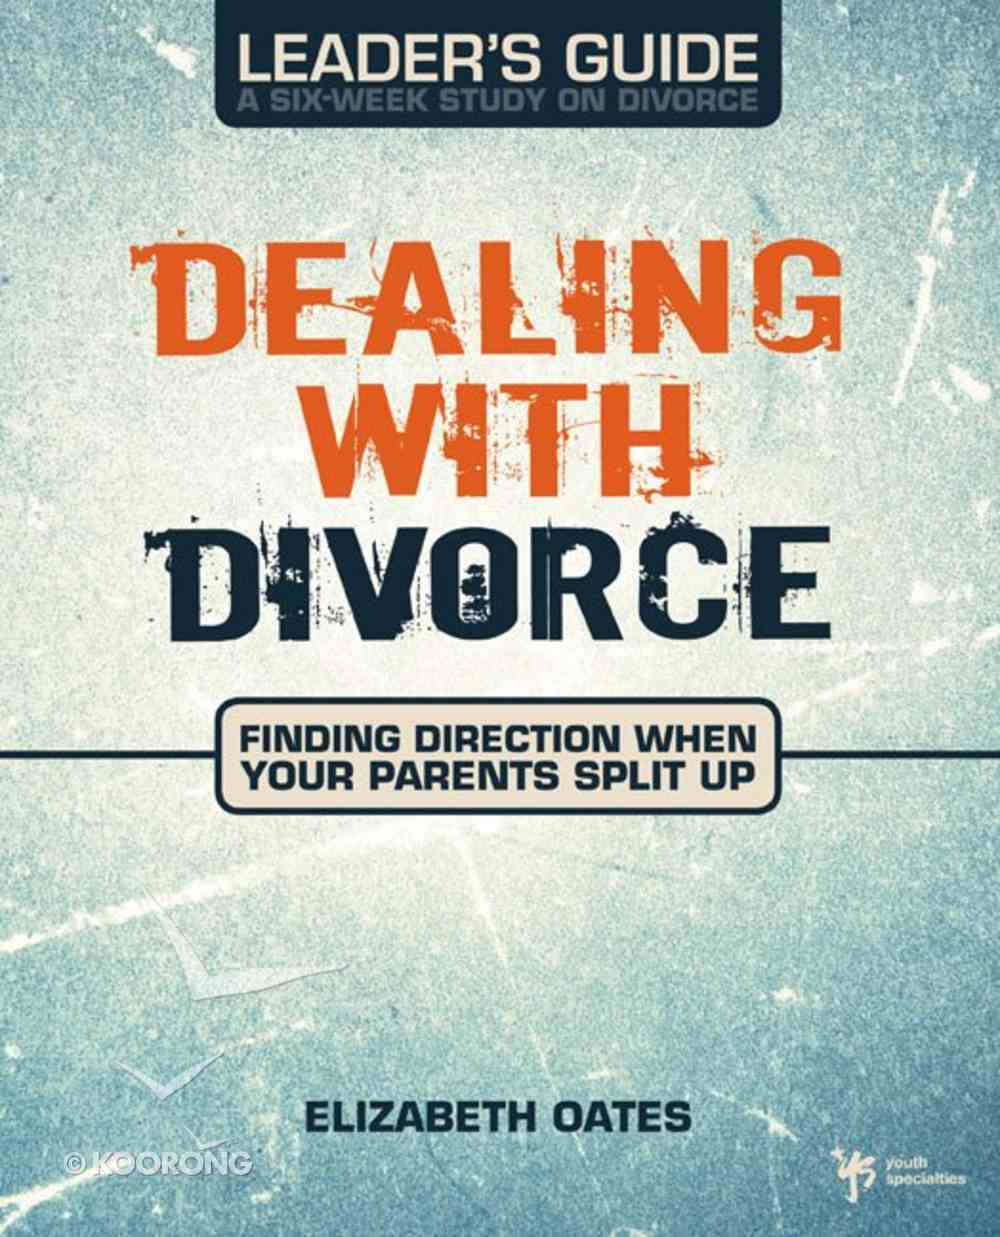 Dealing With Divorce (Leader's Guide) eBook